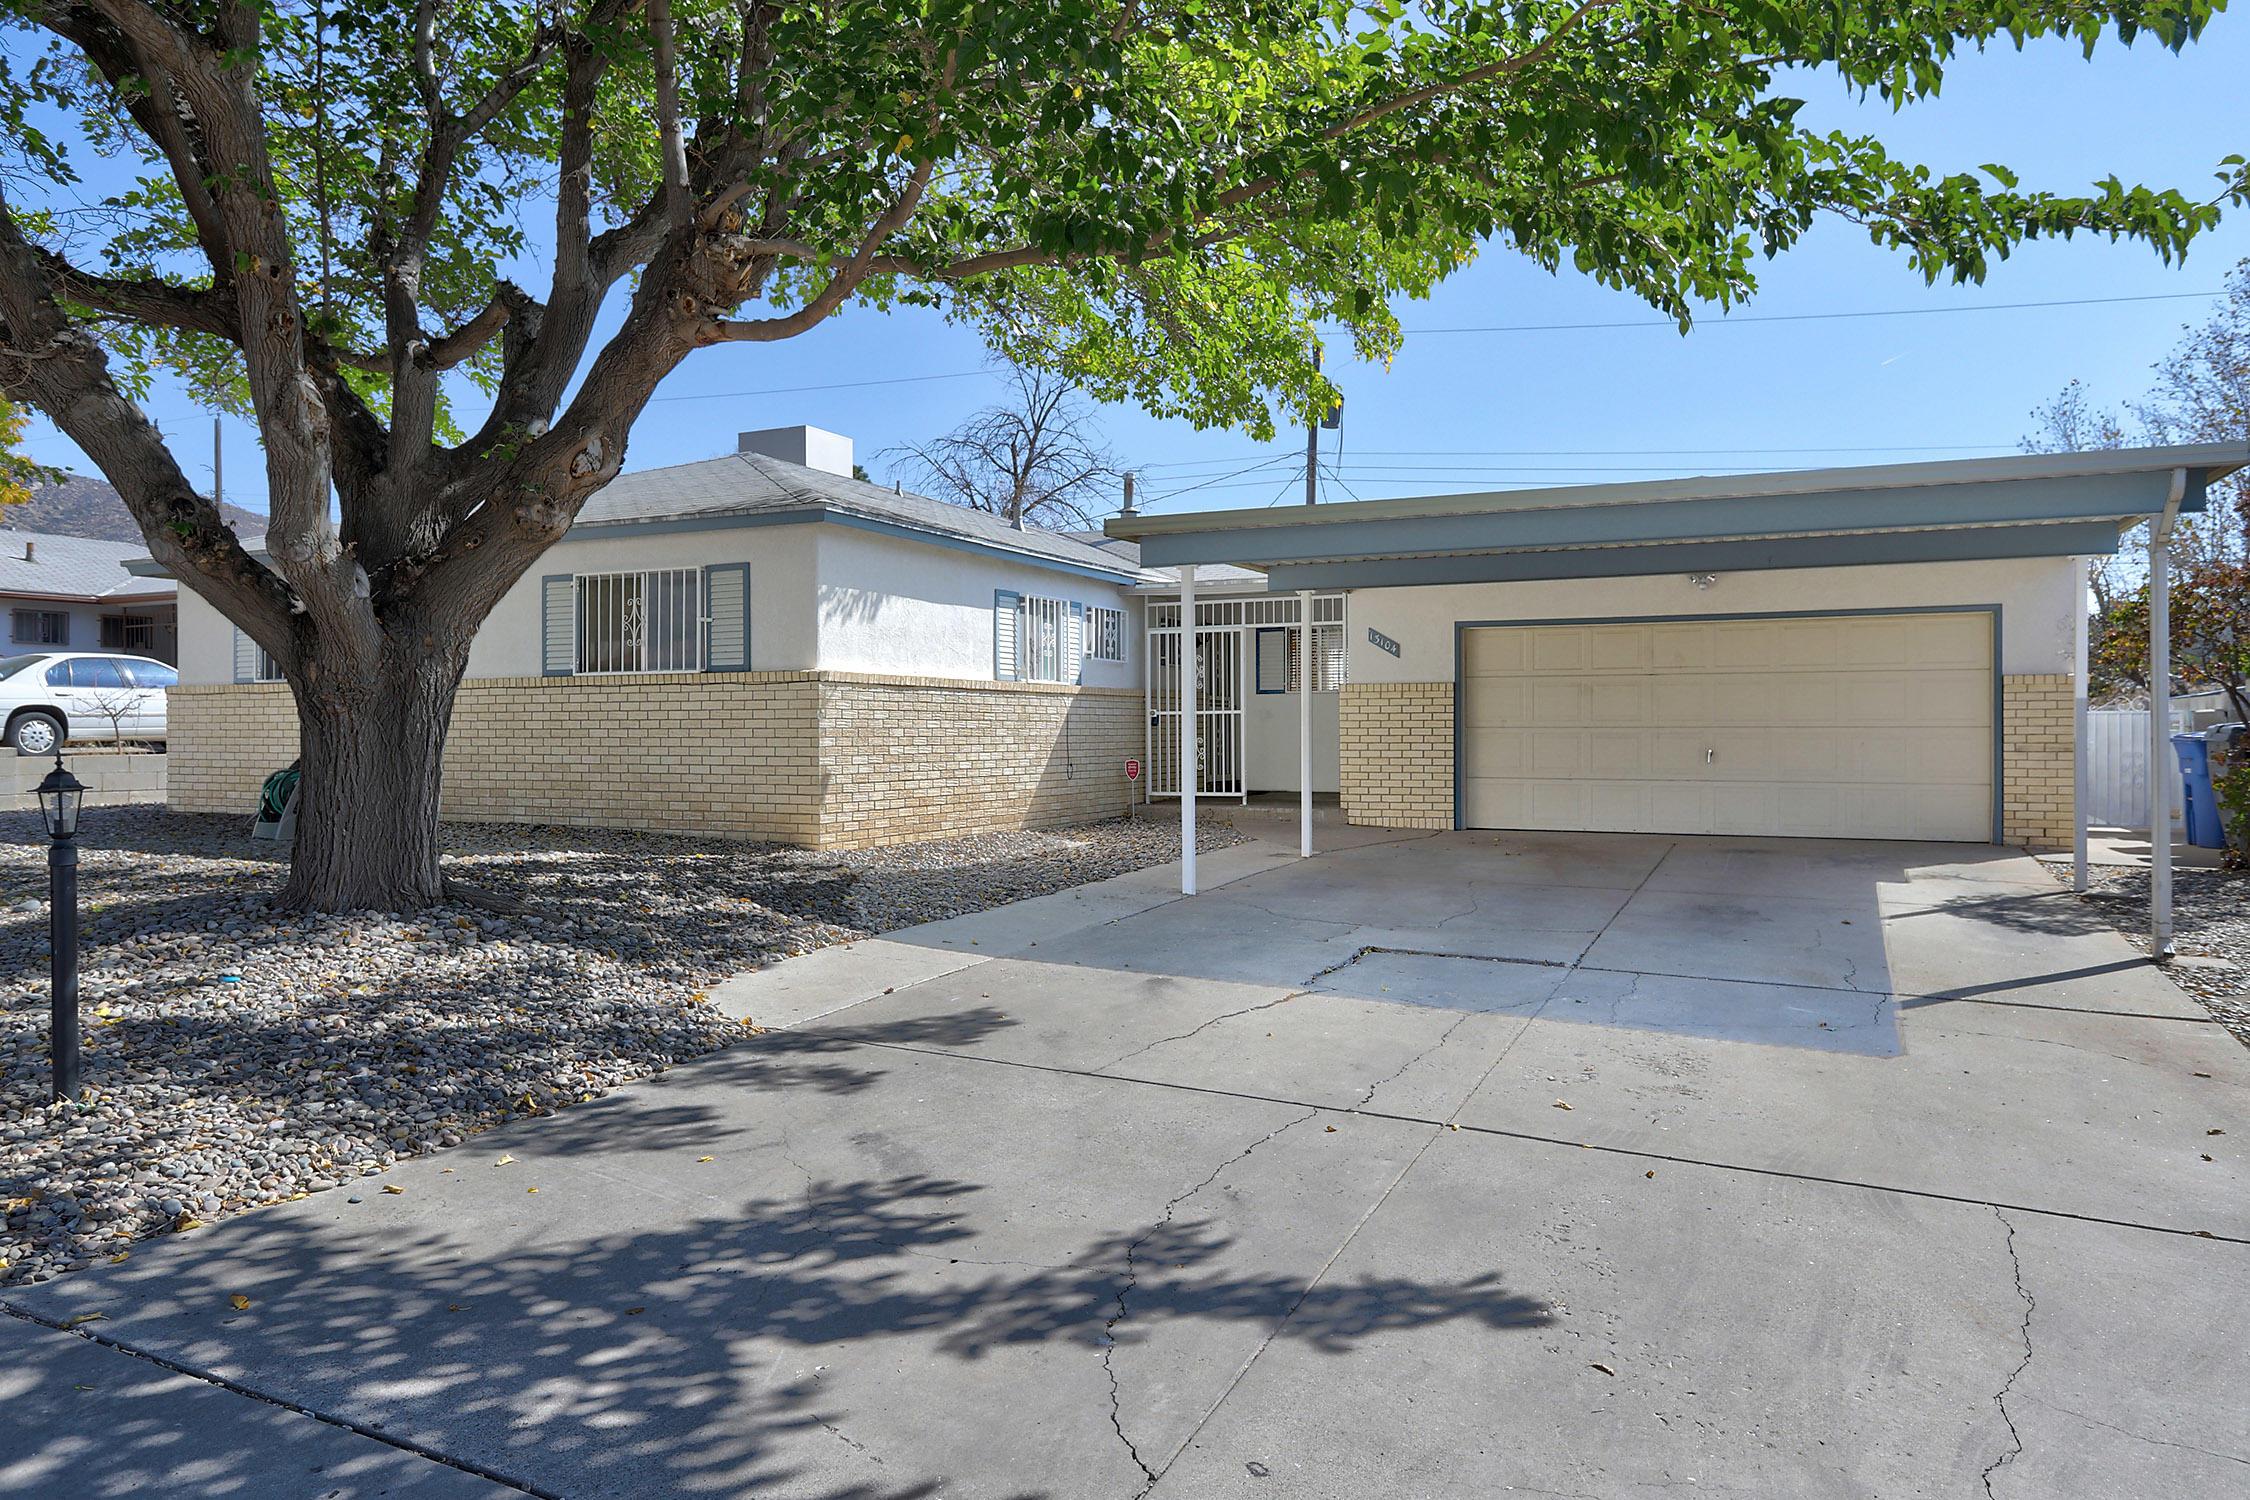 Clean & move in ready in the NE Heights. Two spacious living rooms, one with a fireplace is perfect to close off from the rest of the house. Kitchen has granite countertops, lots of storage, and eat at bar.  Both bathrooms have been updated with marble top vanities & custom tile work. Oversized laundry room perfect for craft room or office. Private back yard is ready for your garden. 2 car carport to keep the snow off your vehicles. 5 year old furnace & master cool duct through the house, with a second cooler for the den. New shingle roof being installed. Easy access to I-40.